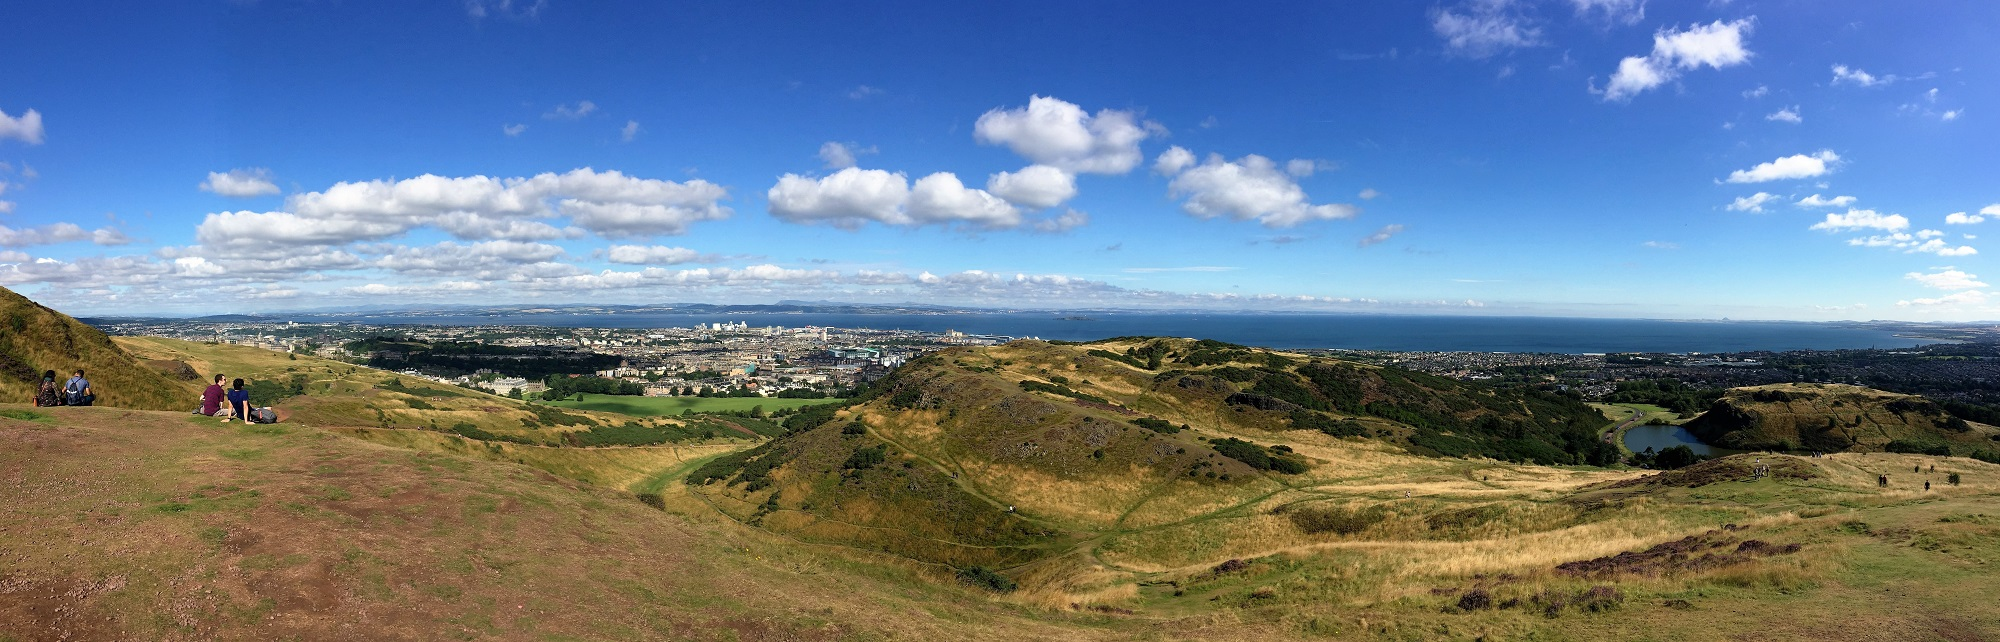 The view from Holyrood Park.